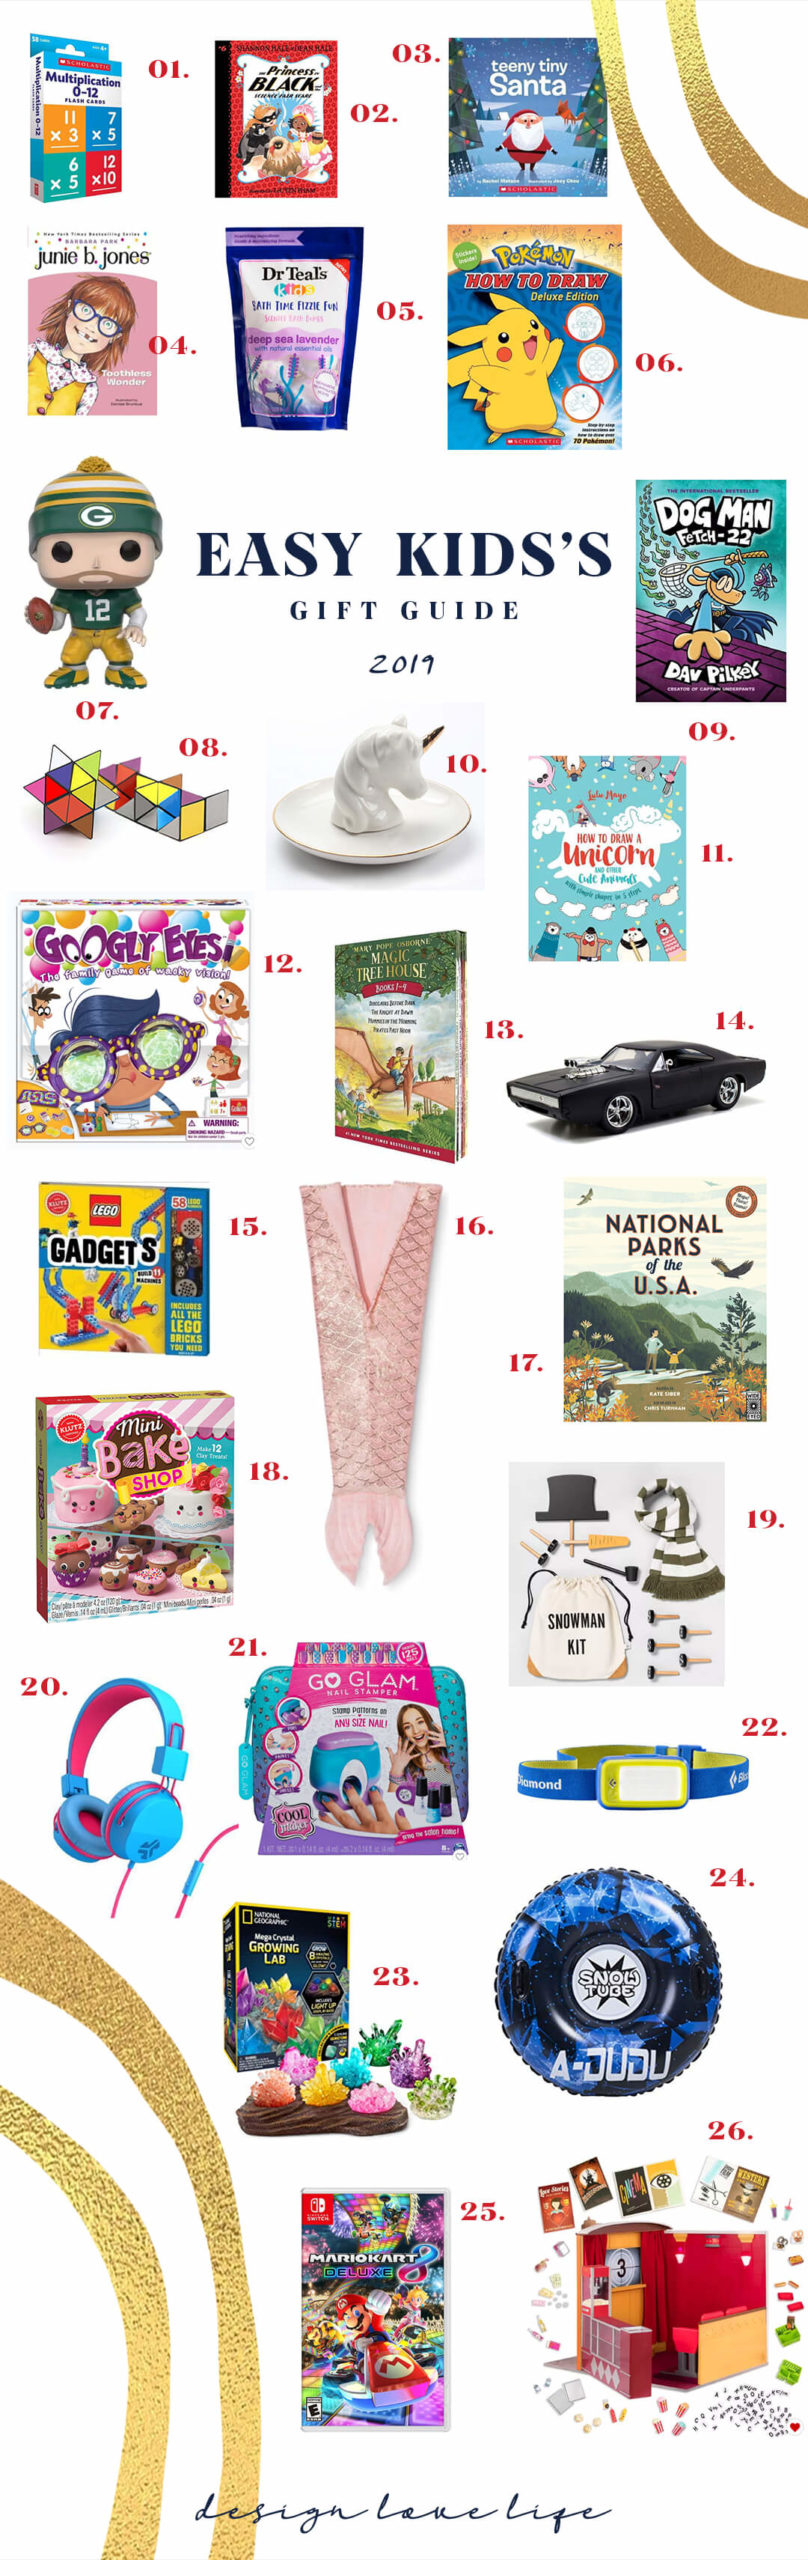 Easy Kid's Gift Guide for last minute ideas